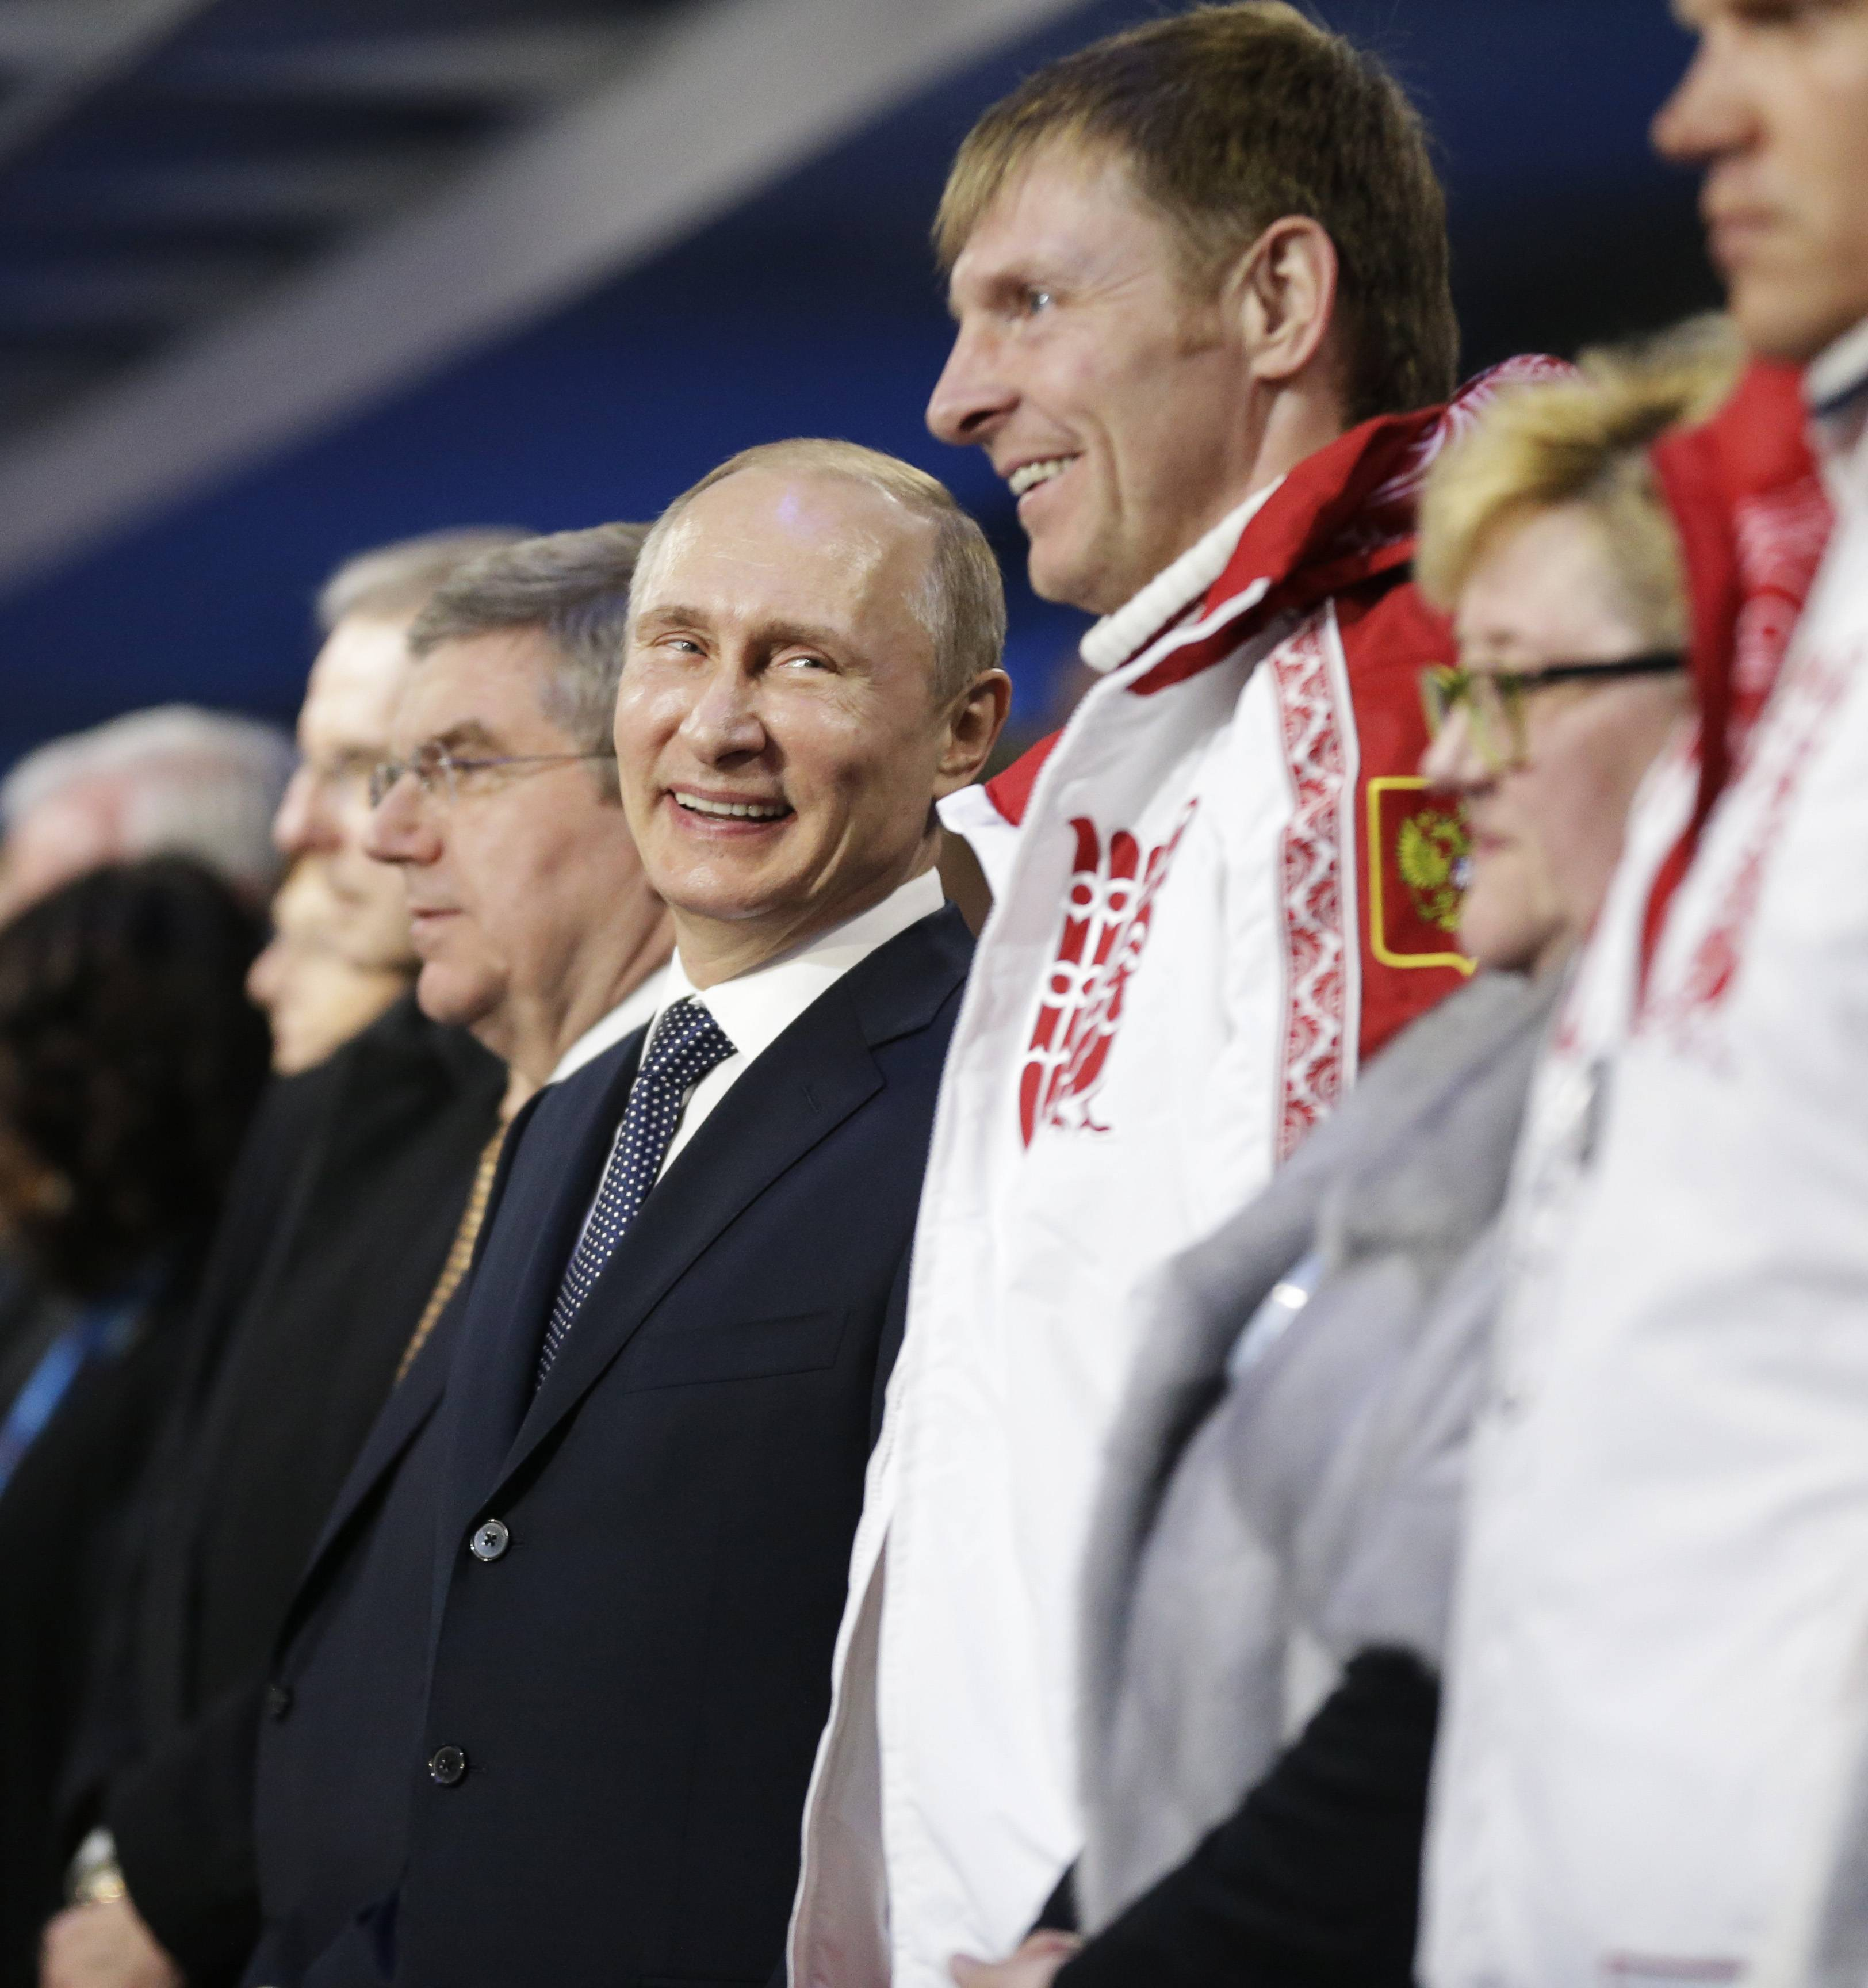 Russian President Vladimir Putin, left, stands next to Alexander Zubkov, gold medalist in the two-man and four-man bobsled for Russia, during the closing ceremony of the 2014 Winter Olympics, Sunday, Feb. 23, 2014, in Sochi, Russia.